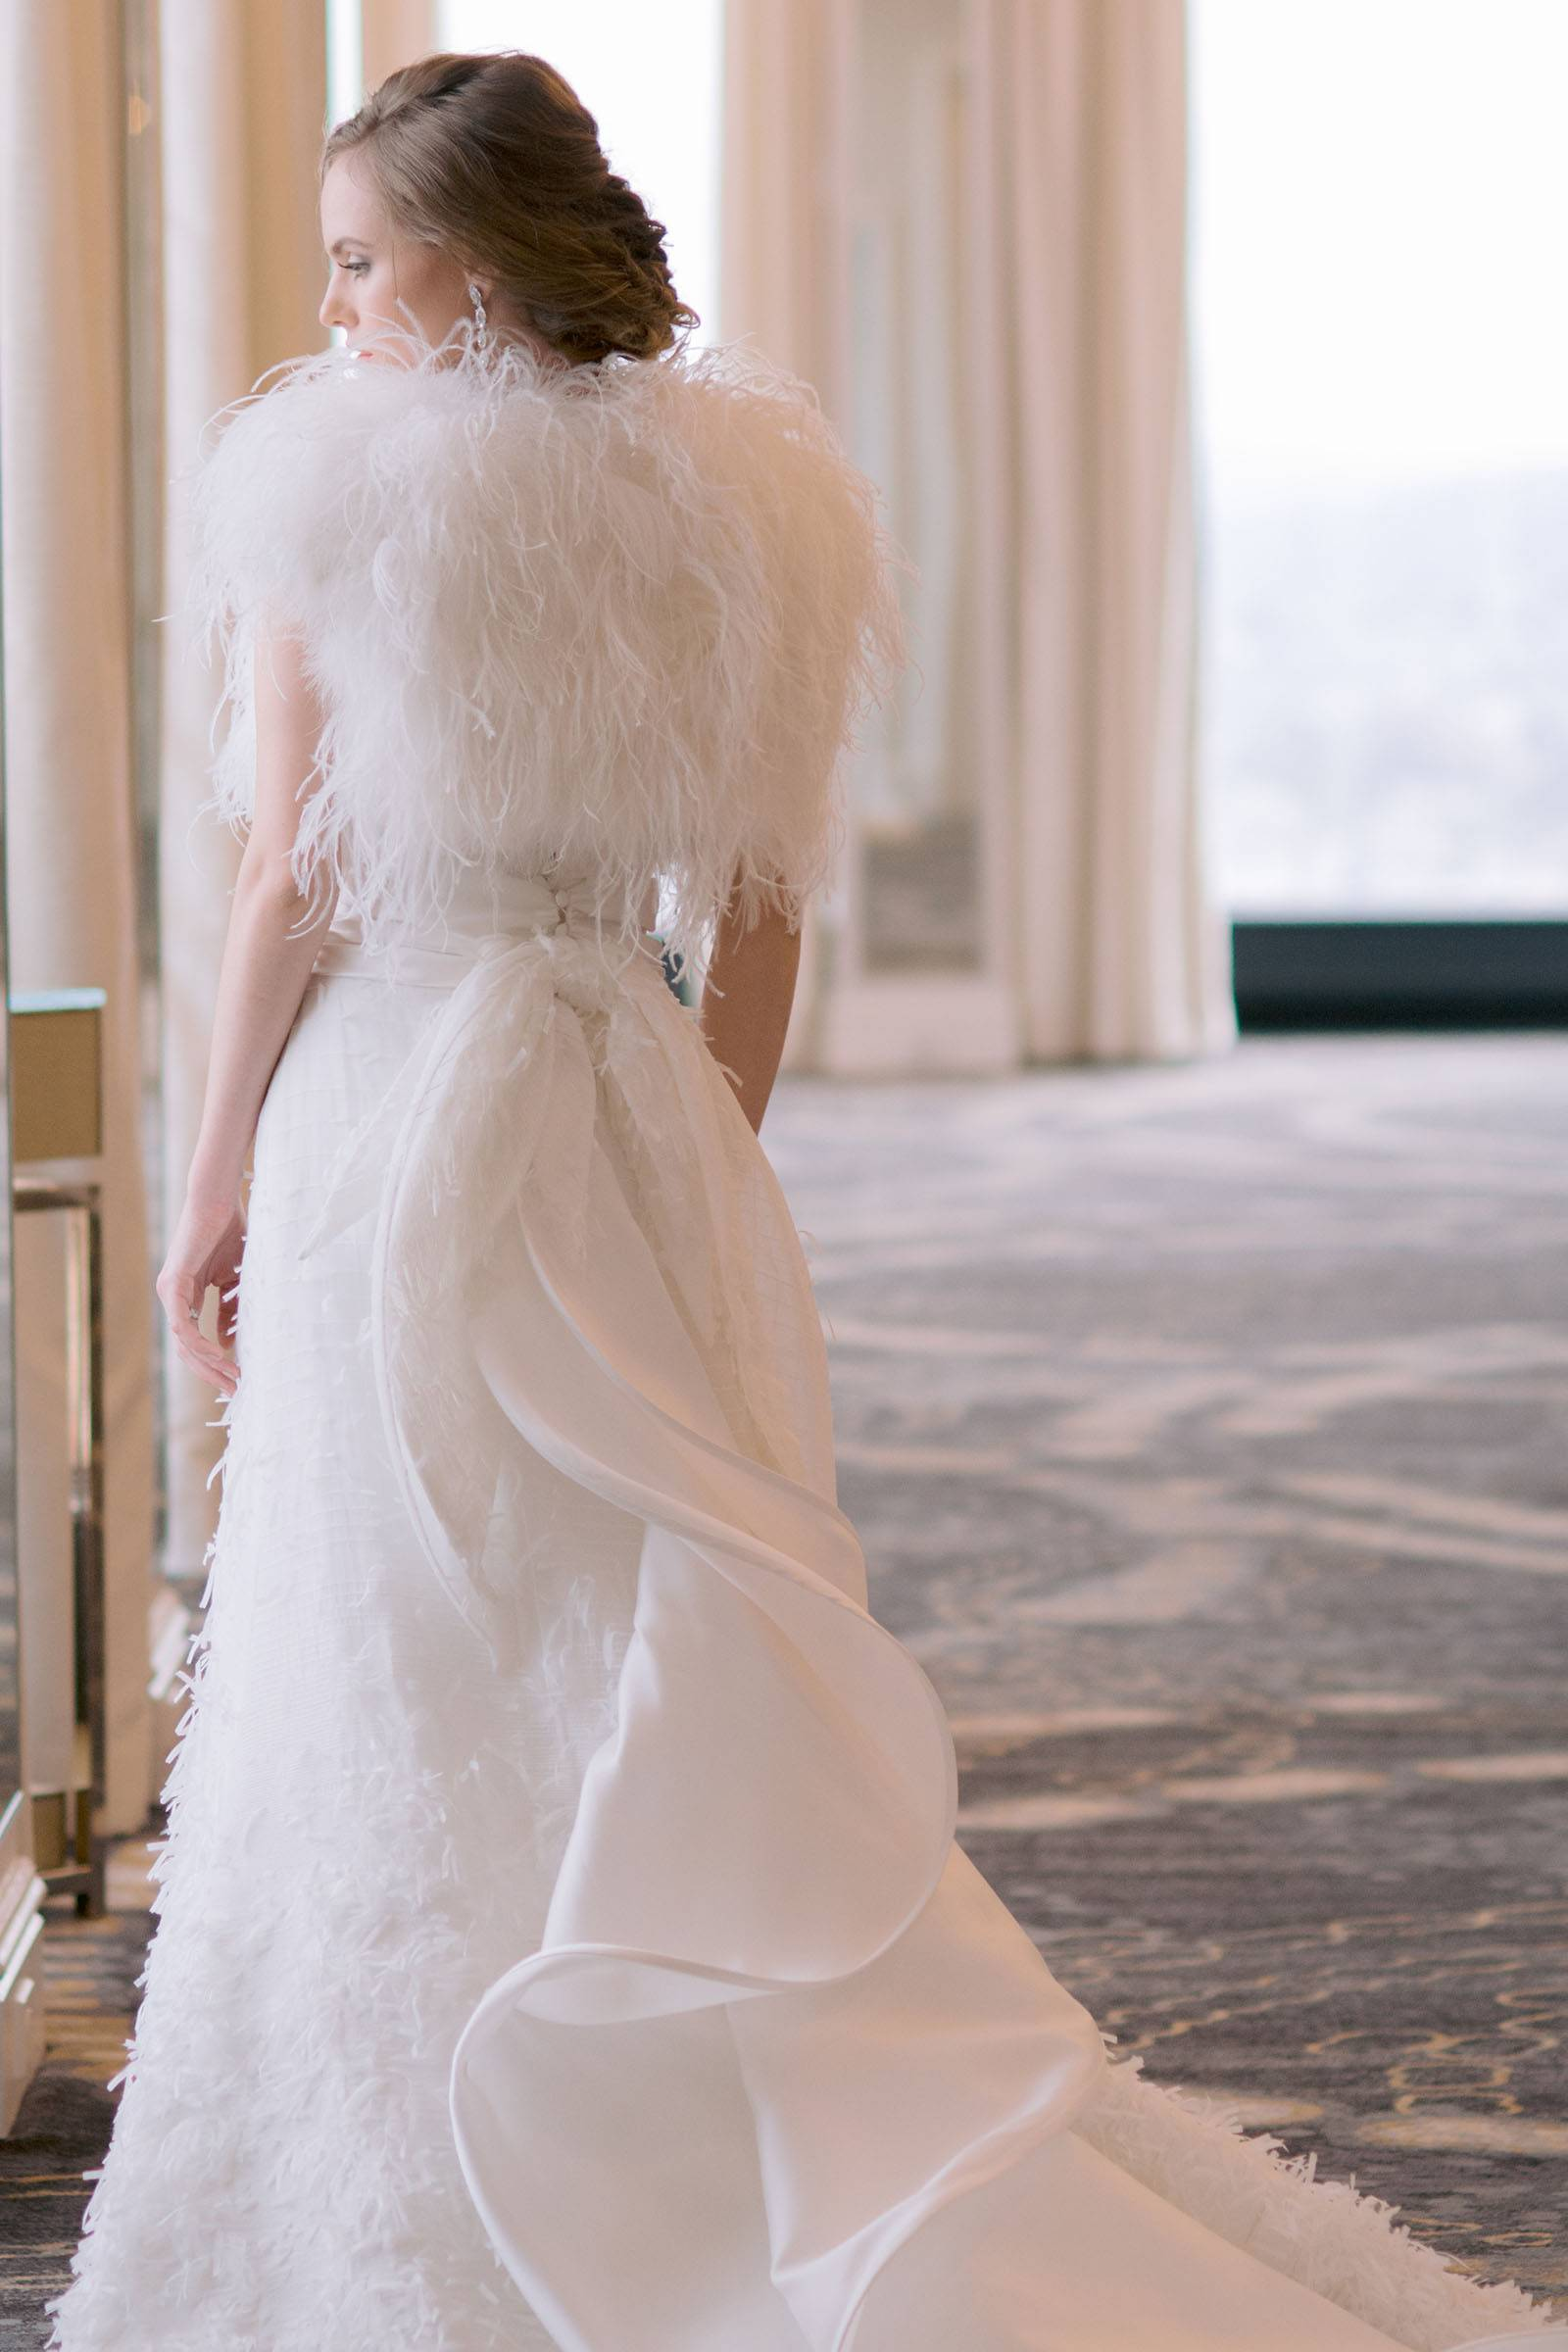 Wedding gown with Ostrich feather shrug